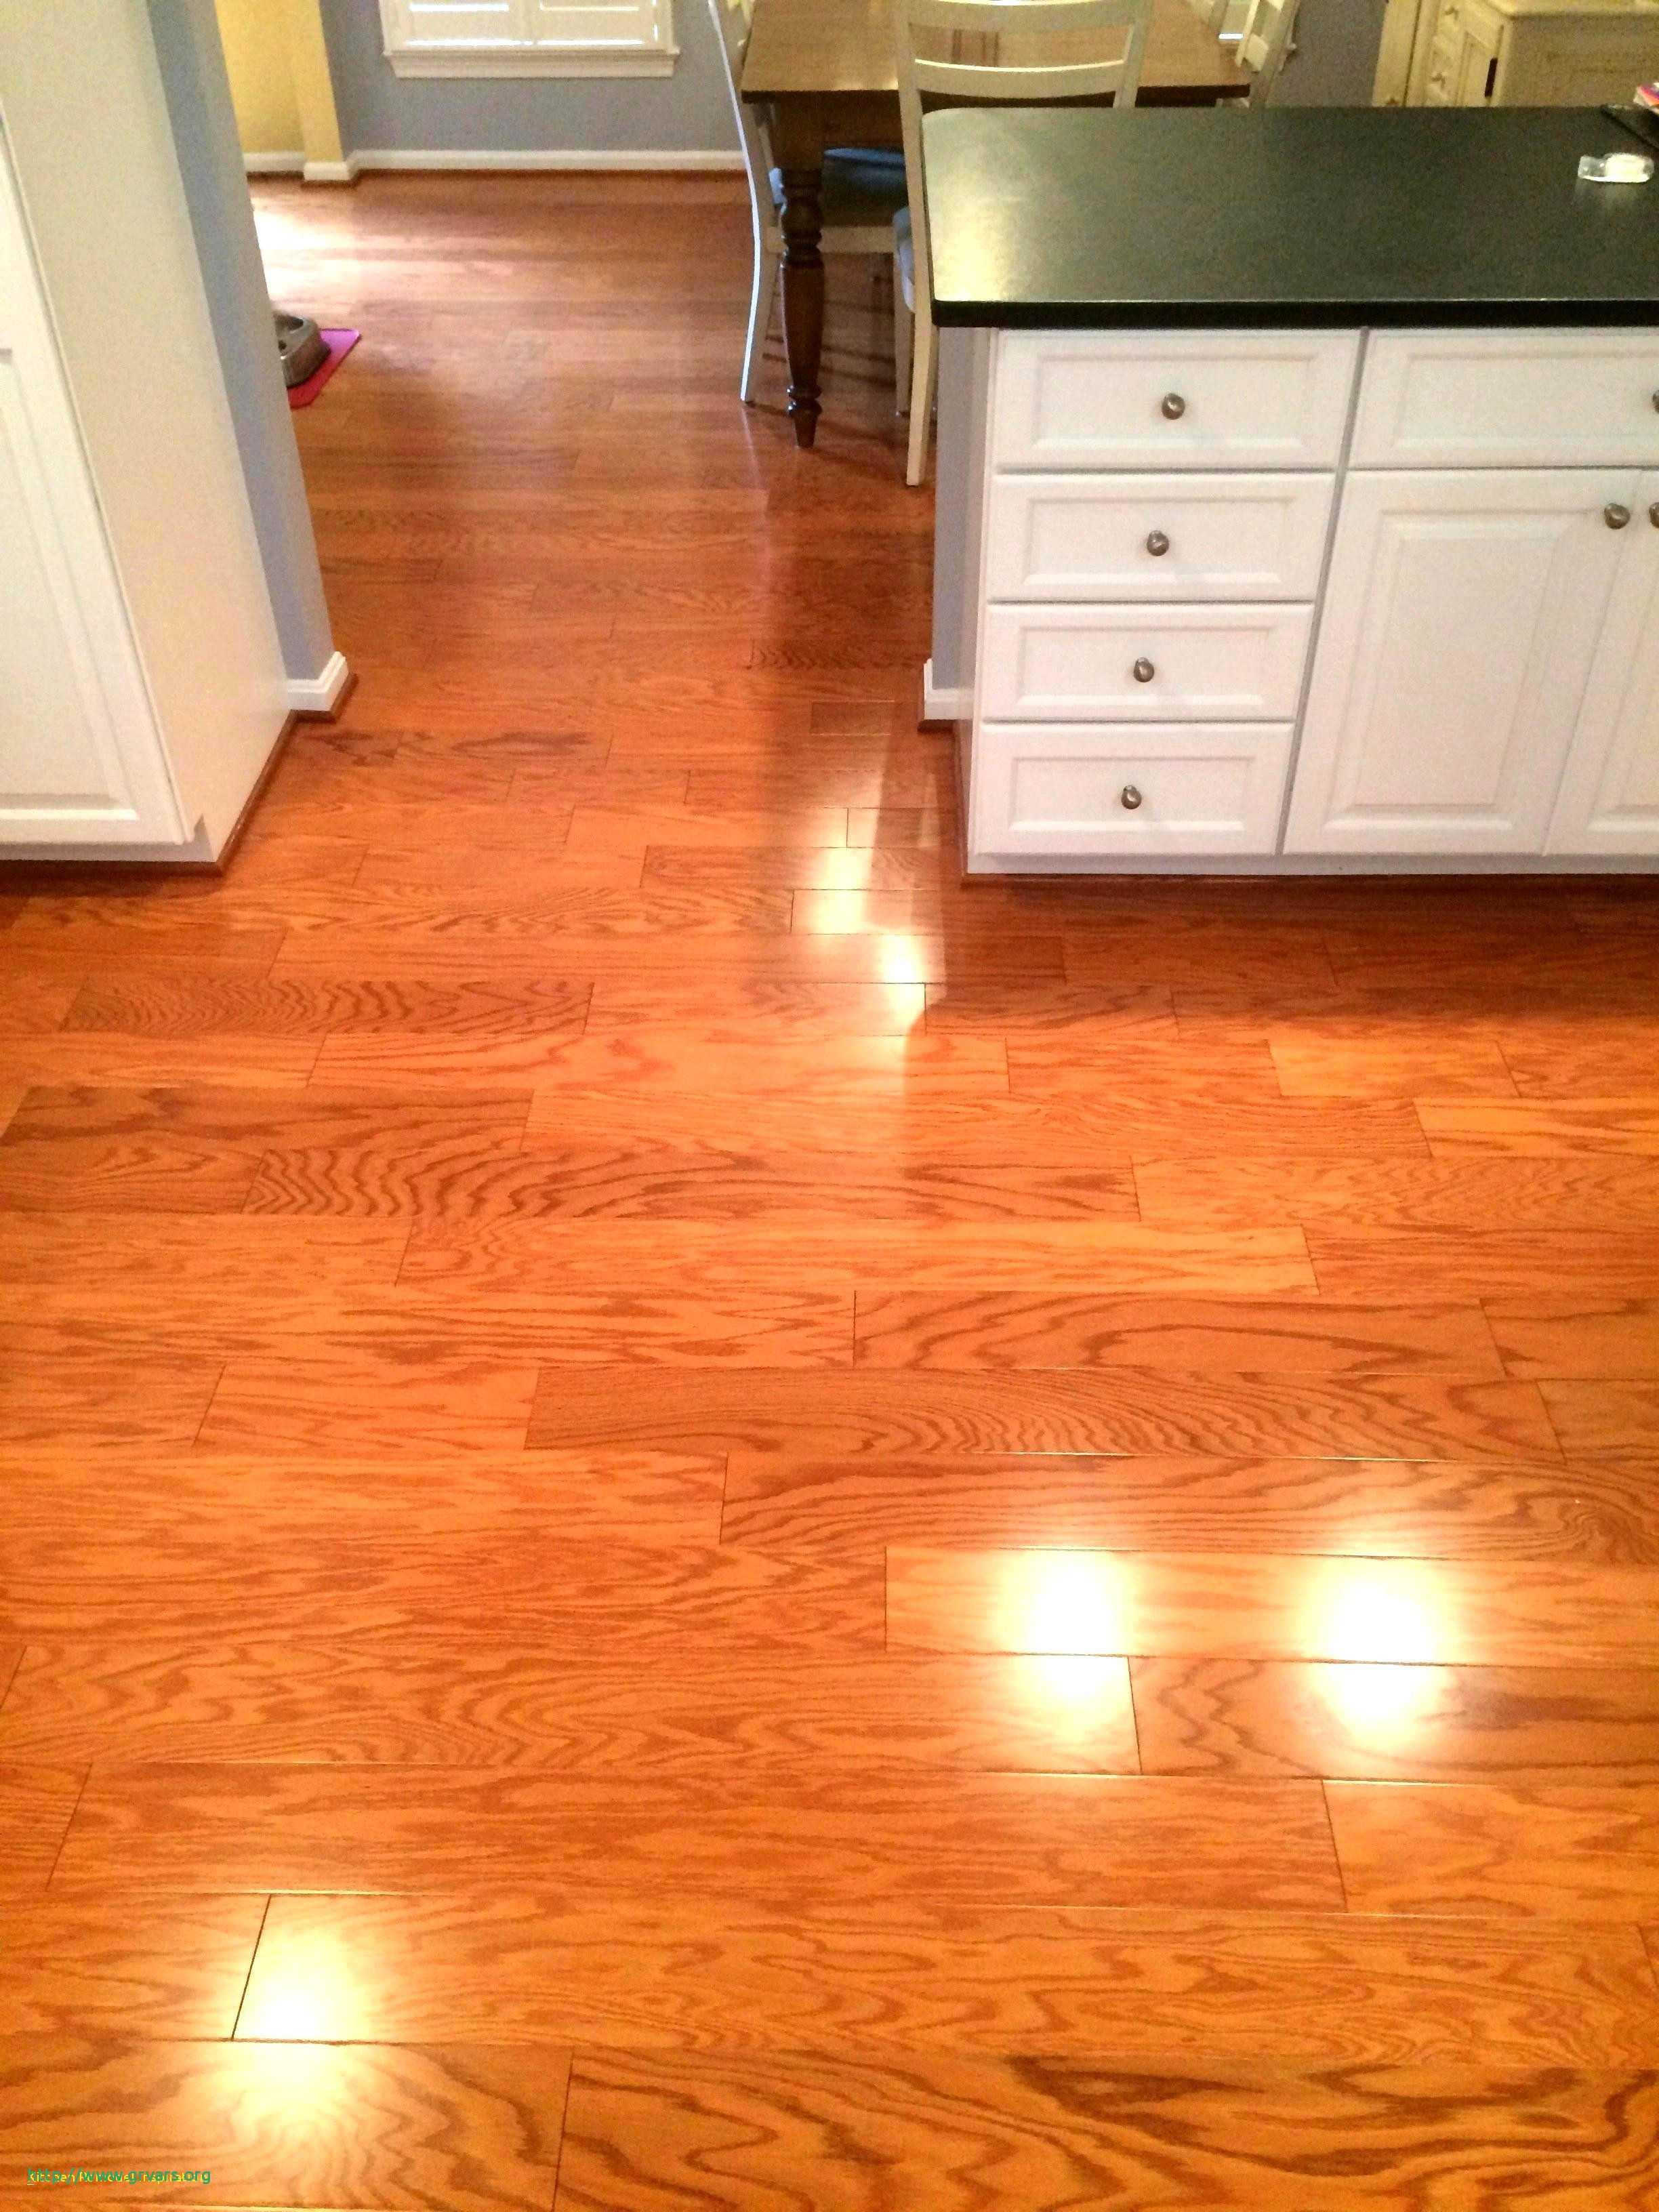 Hardwood Flooring Nz Of 19 Frais Laminate Flooring Compared to Hardwood Ideas Blog for Kitchen Hardwood Floors Fabulous where to Hardwood Flooring Inspirational 0d Grace Place Barnegat